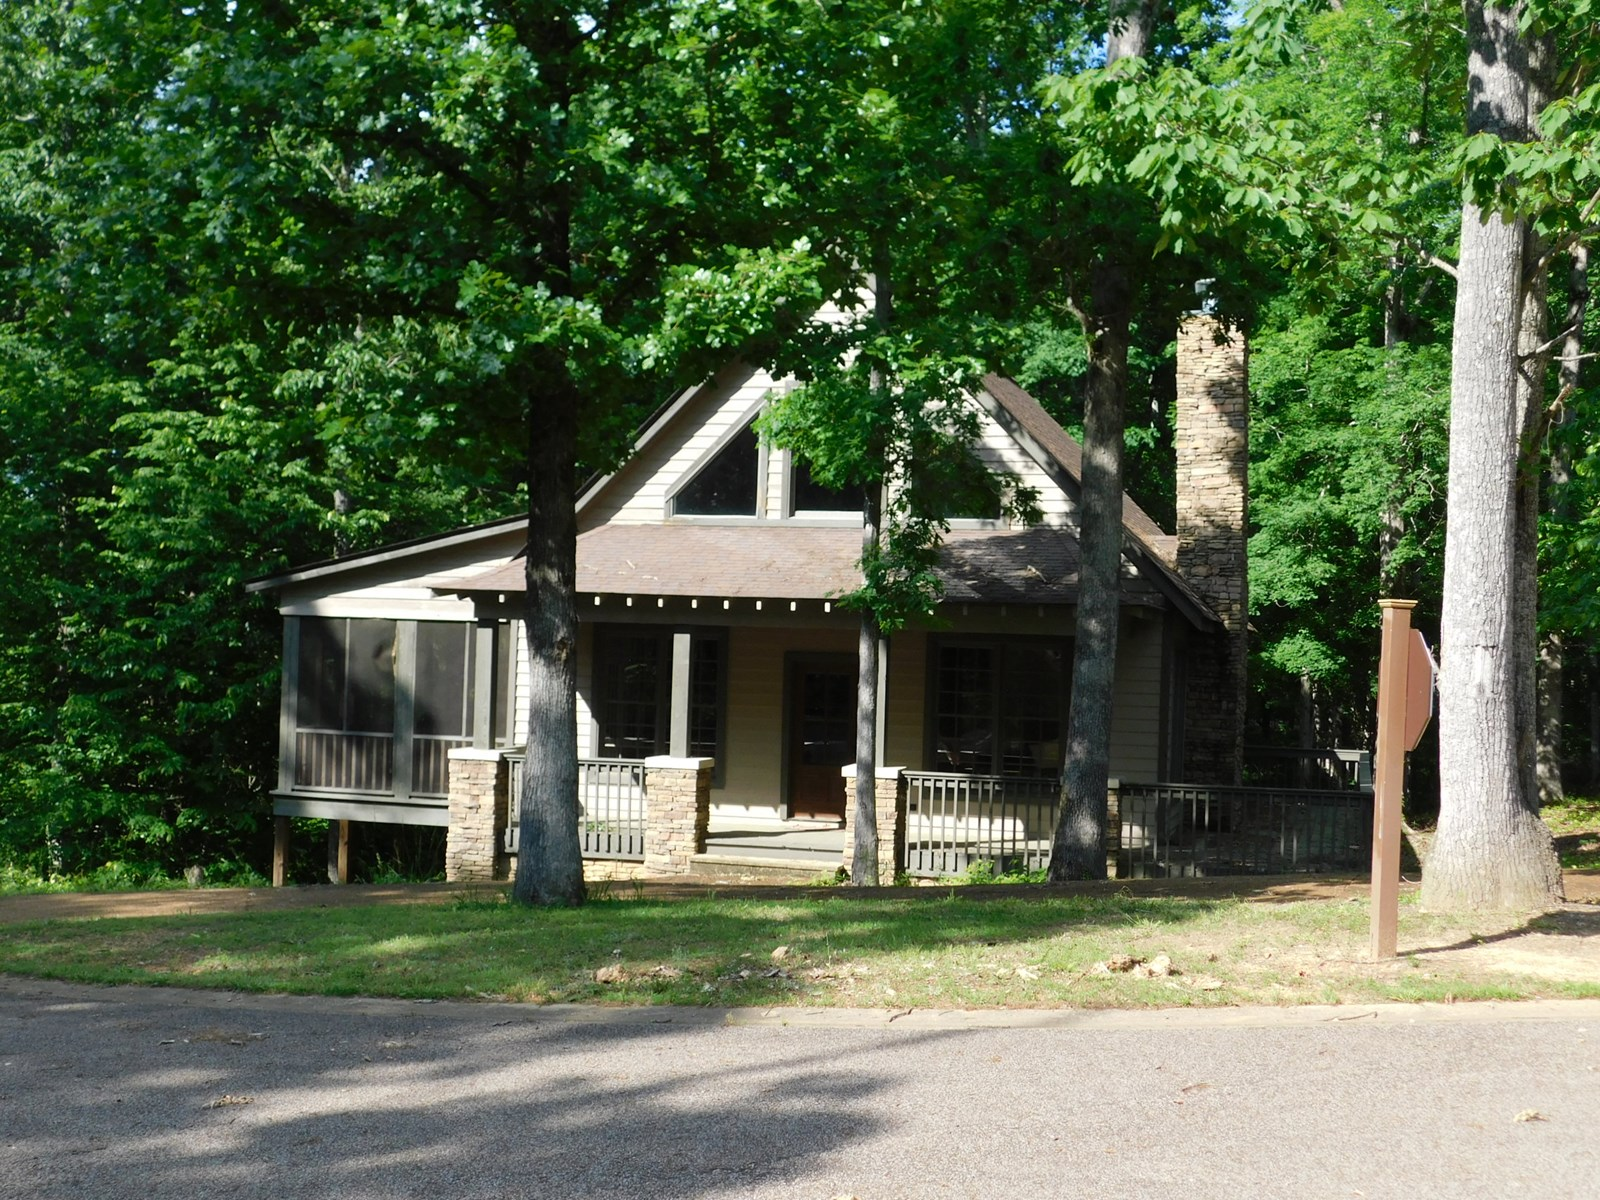 CABIN FOR SALE IN TENNESSEE NEAR PICKWICK LAKE, GATED RESORT